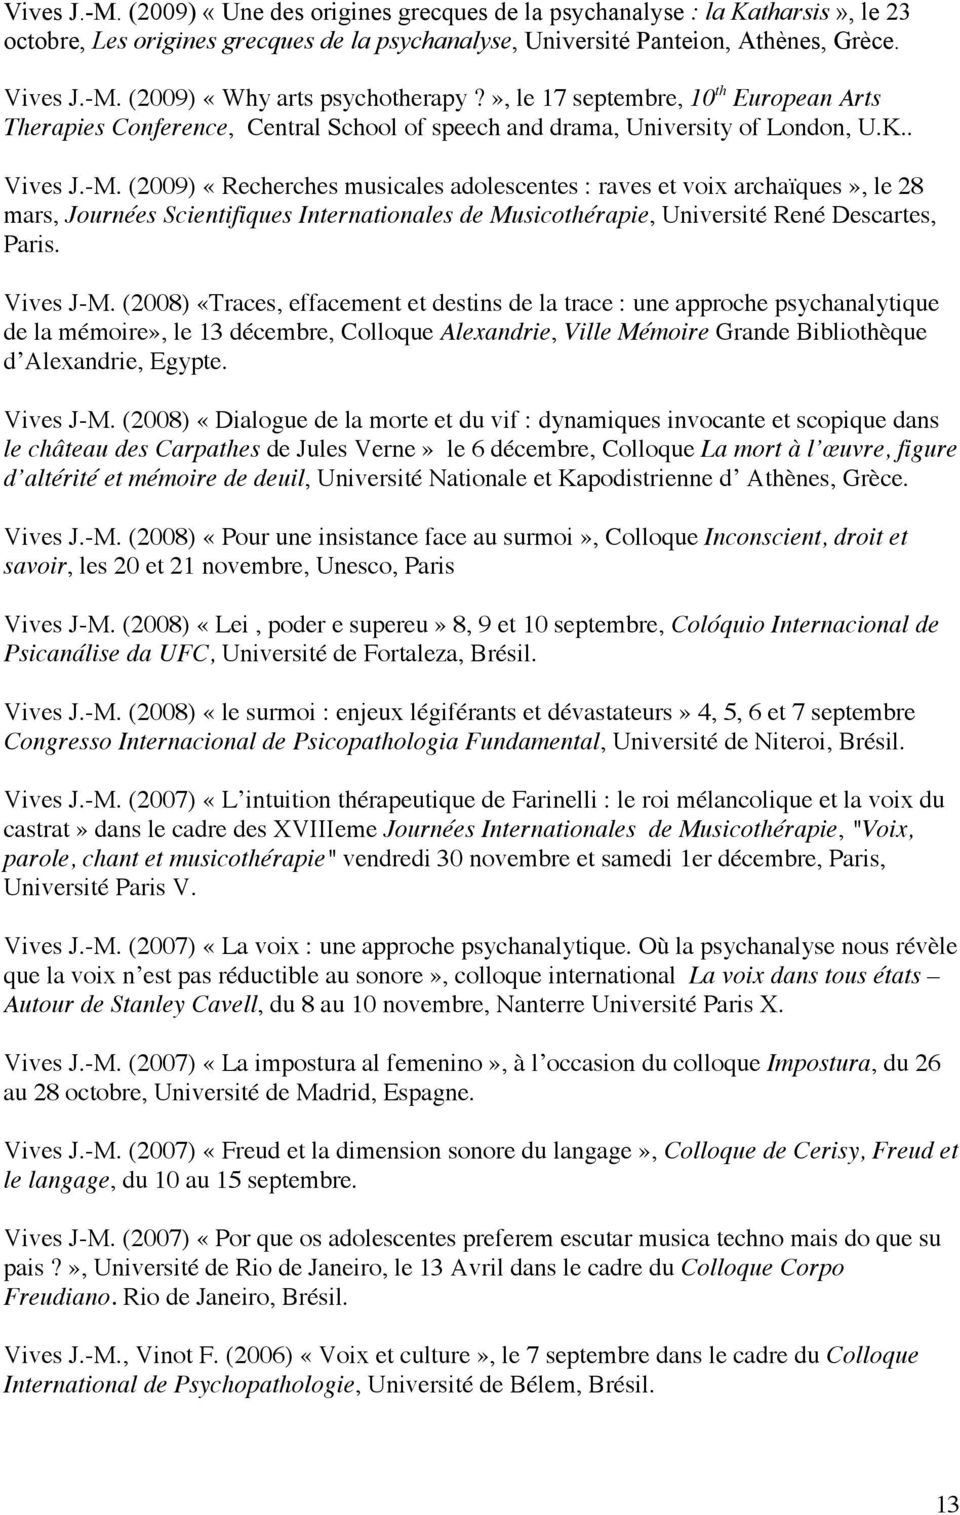 (2009) «Recherches musicales adolescentes : raves et voix archaïques», le 28 mars, Journées Scientifiques Internationales de Musicothérapie, Université René Descartes, Paris. Vives J-M.